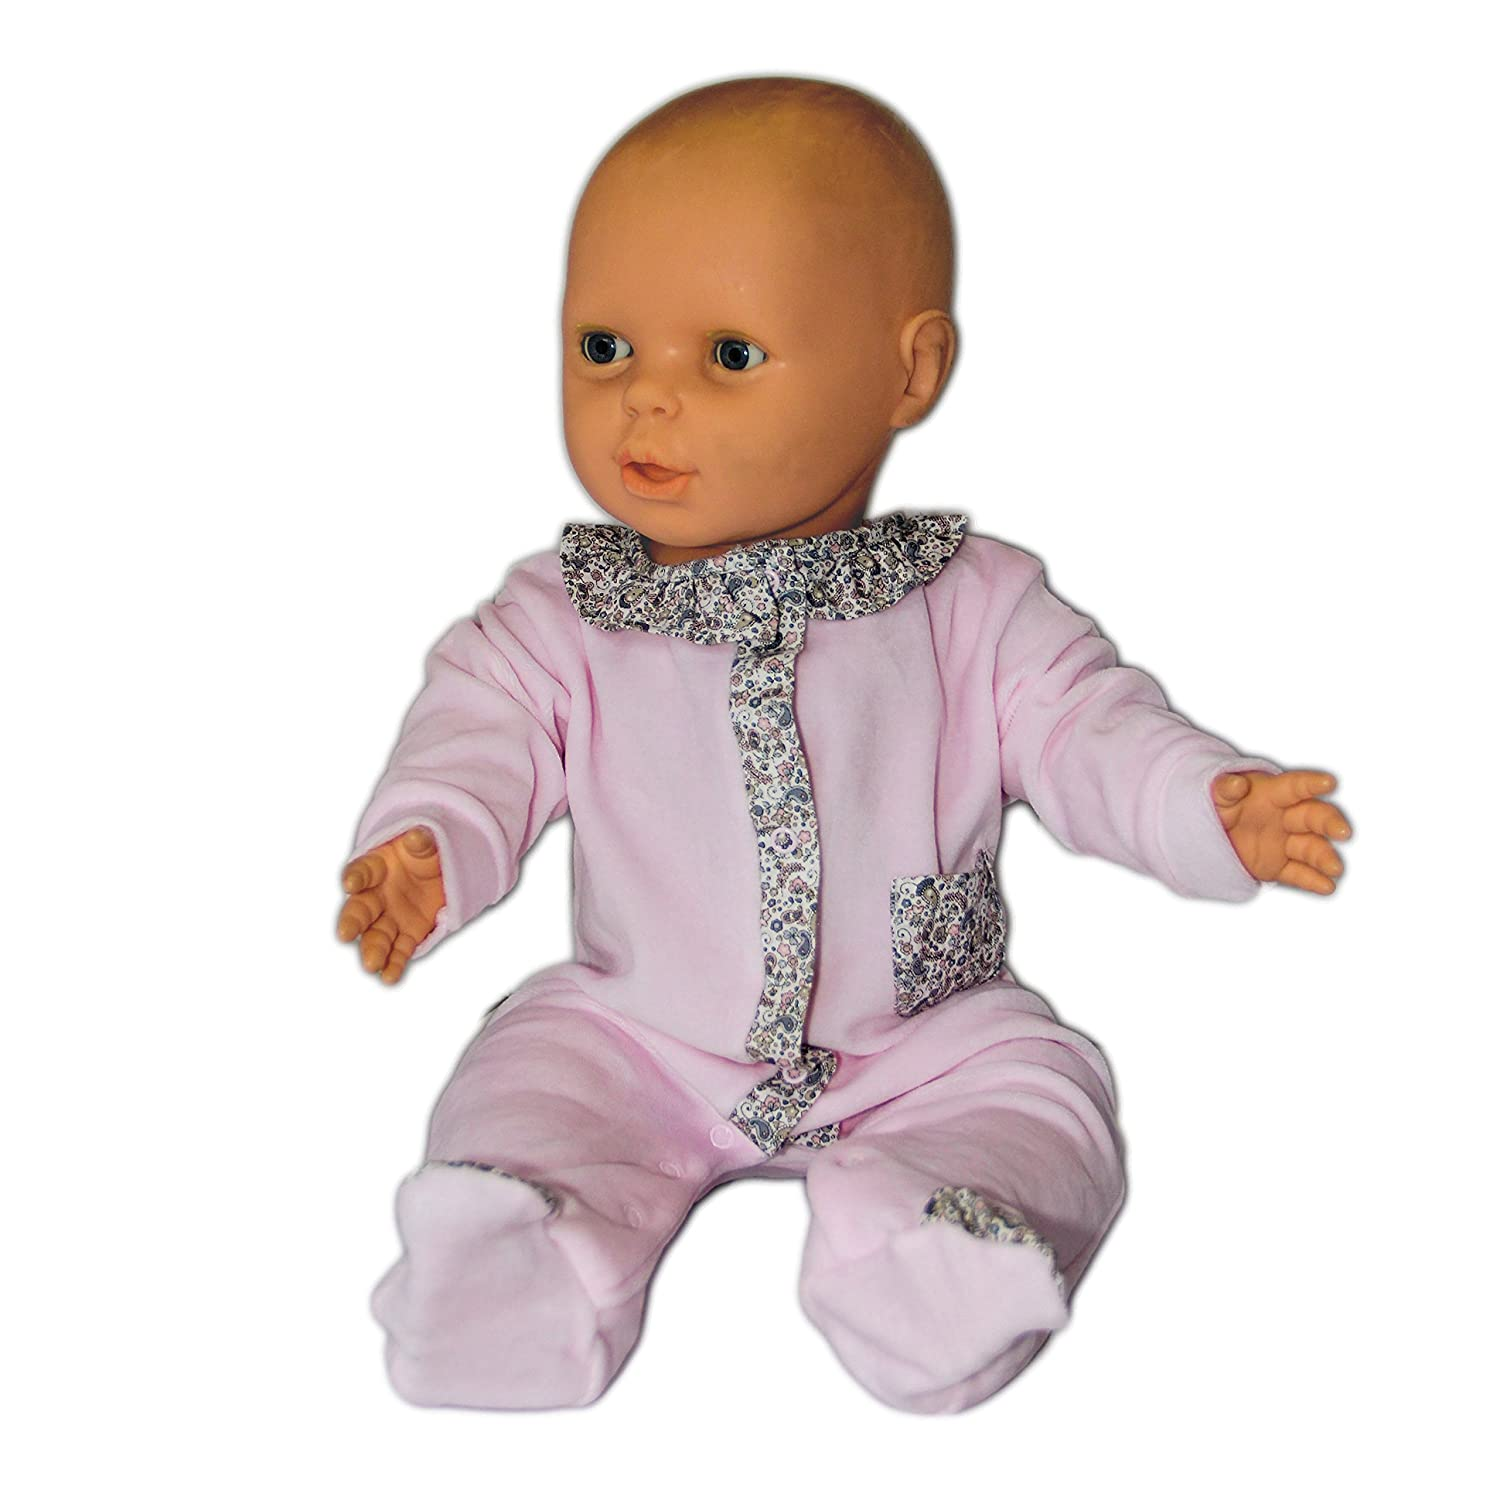 Newborn Baby Girls Cotton Velour Footie Pajamas Sleeper Babysuit Babygrow Push2Posh MN5092VAR